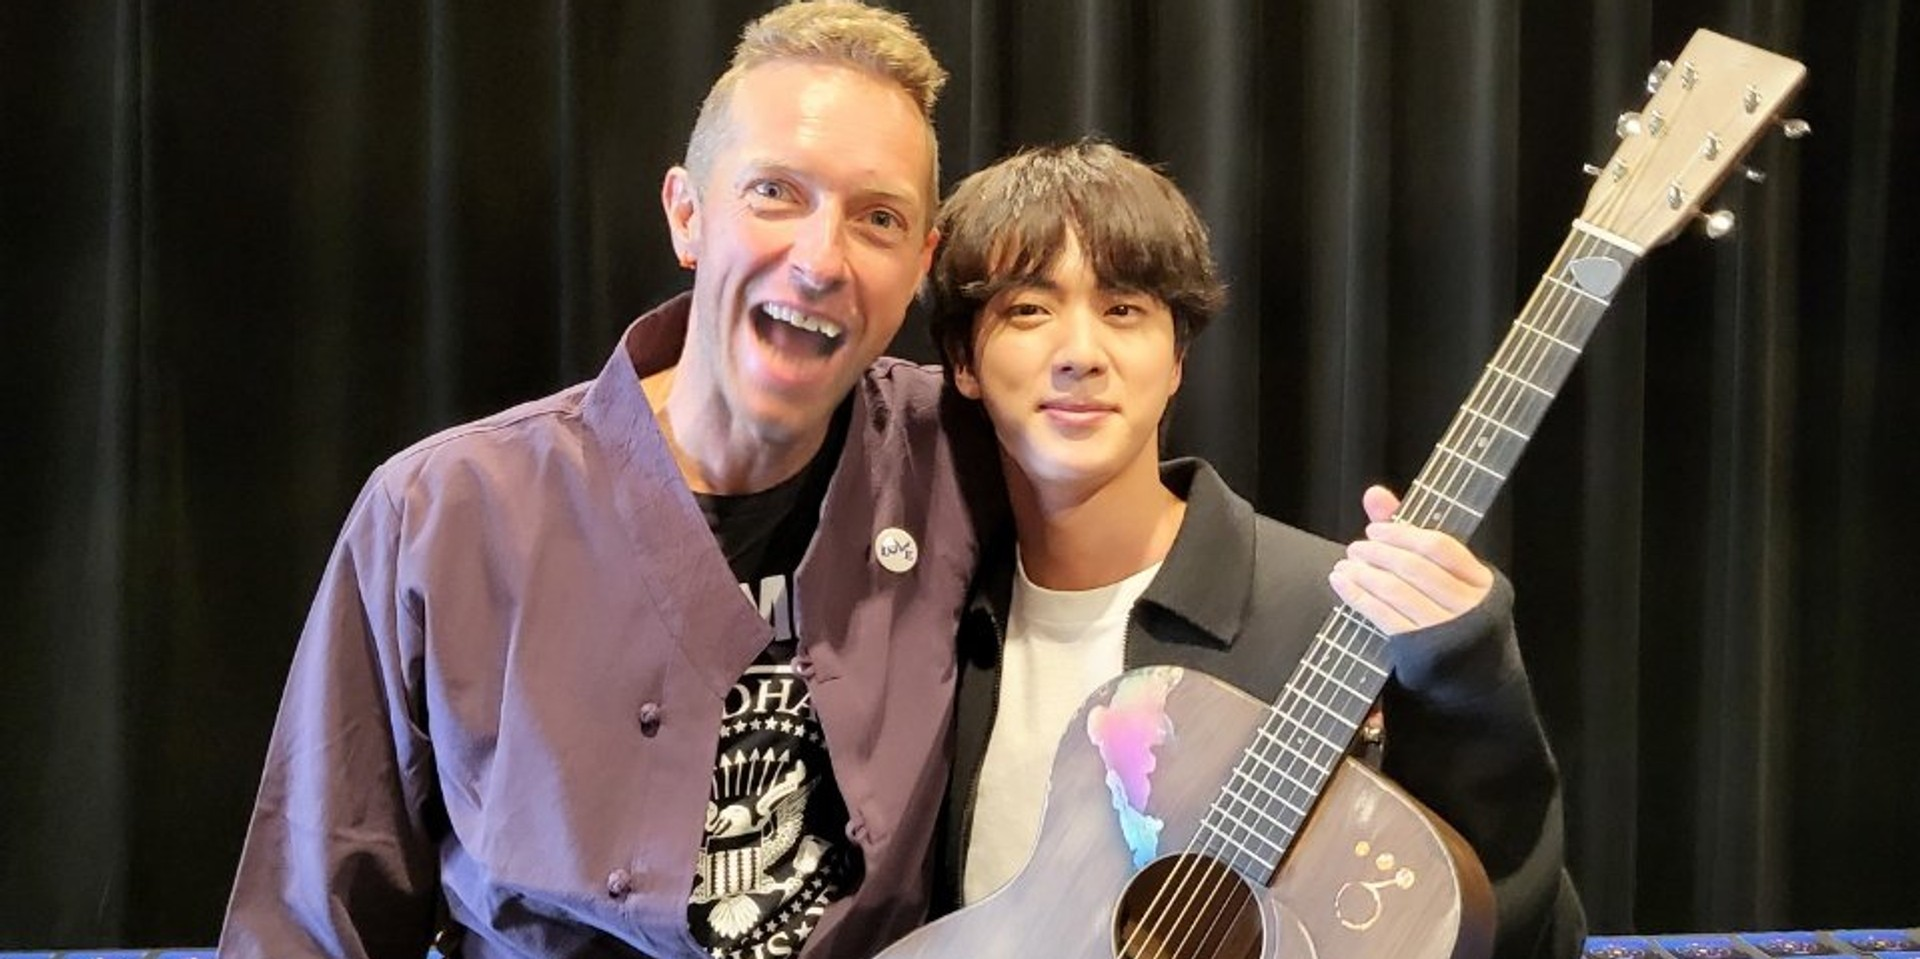 Coldplay's Chris Martin gifts BTS' Jin a signed acoustic guitar